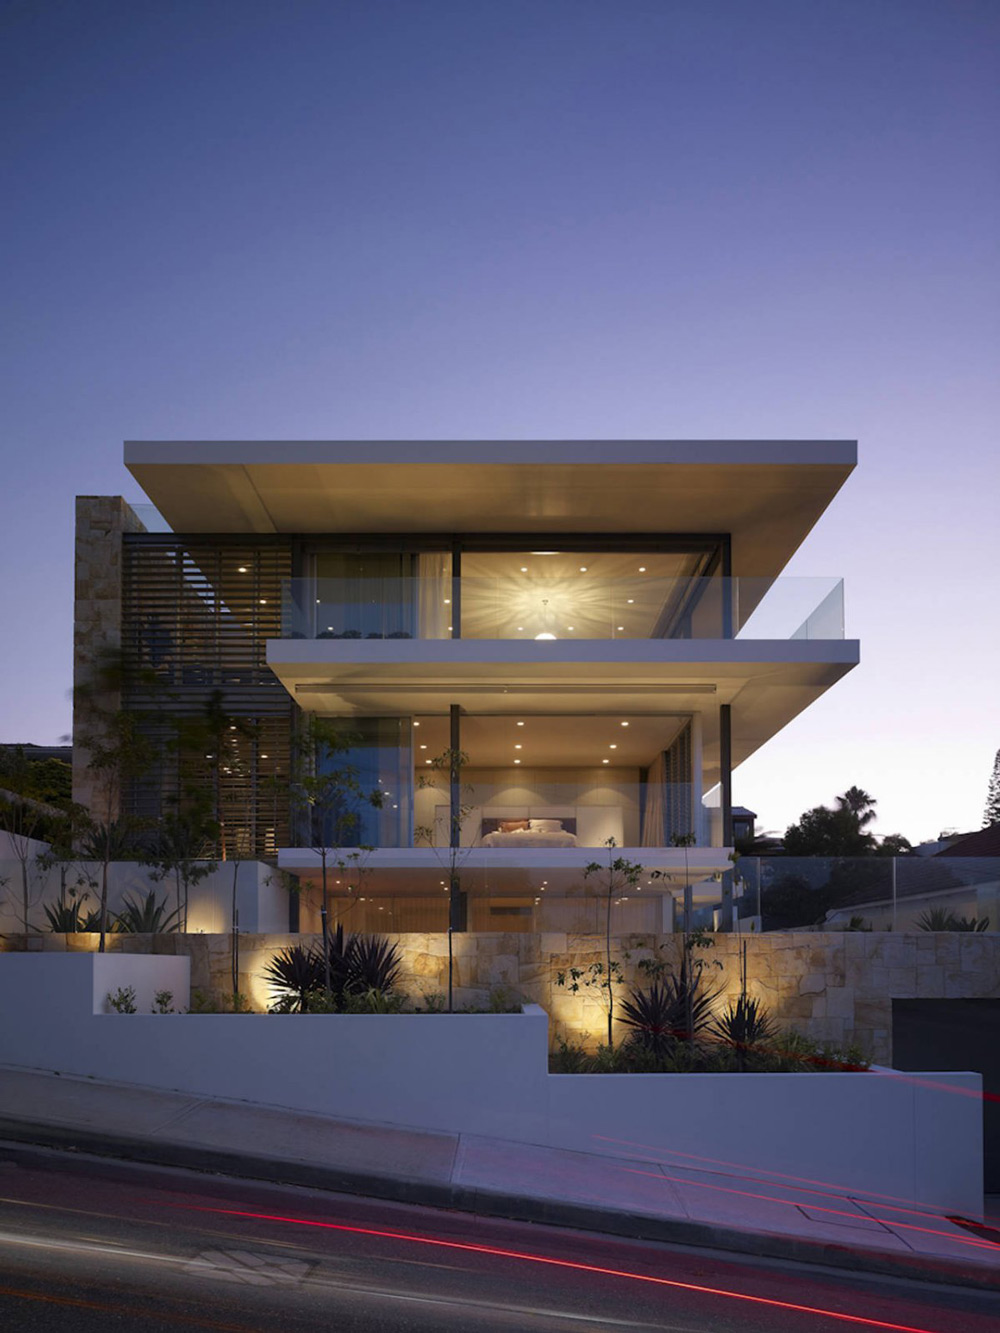 Dusk, Street View, Vaucluse House in Sydney, Australia by MPR Design Group